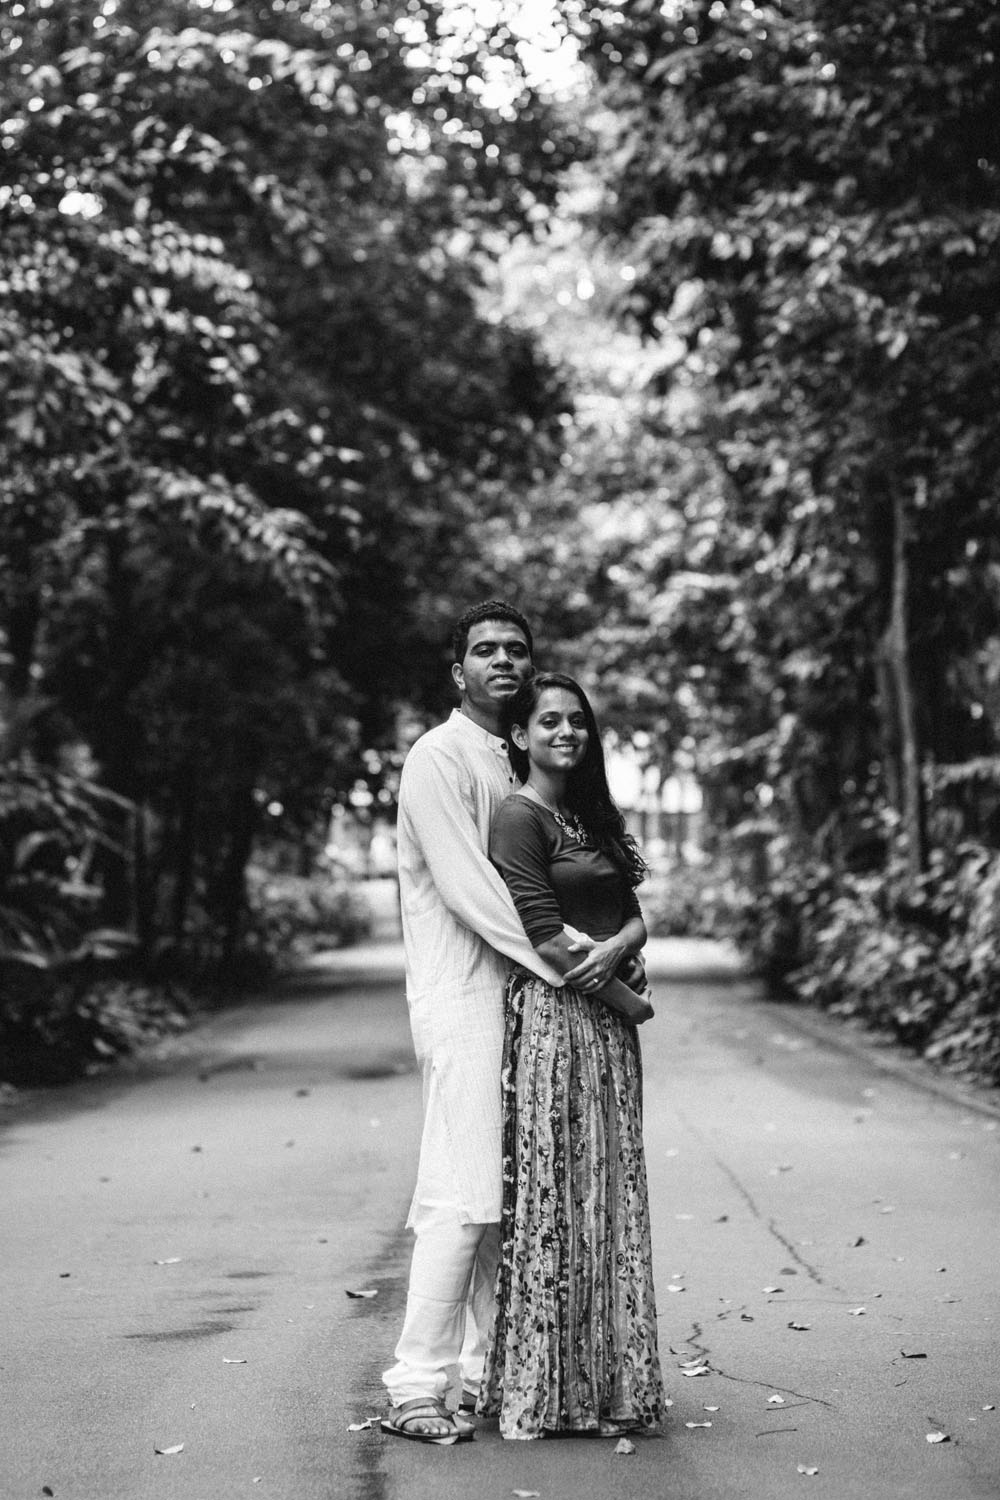 singapore-wedding-photographer-we-made-these-dhriti-arjun-13.jpg